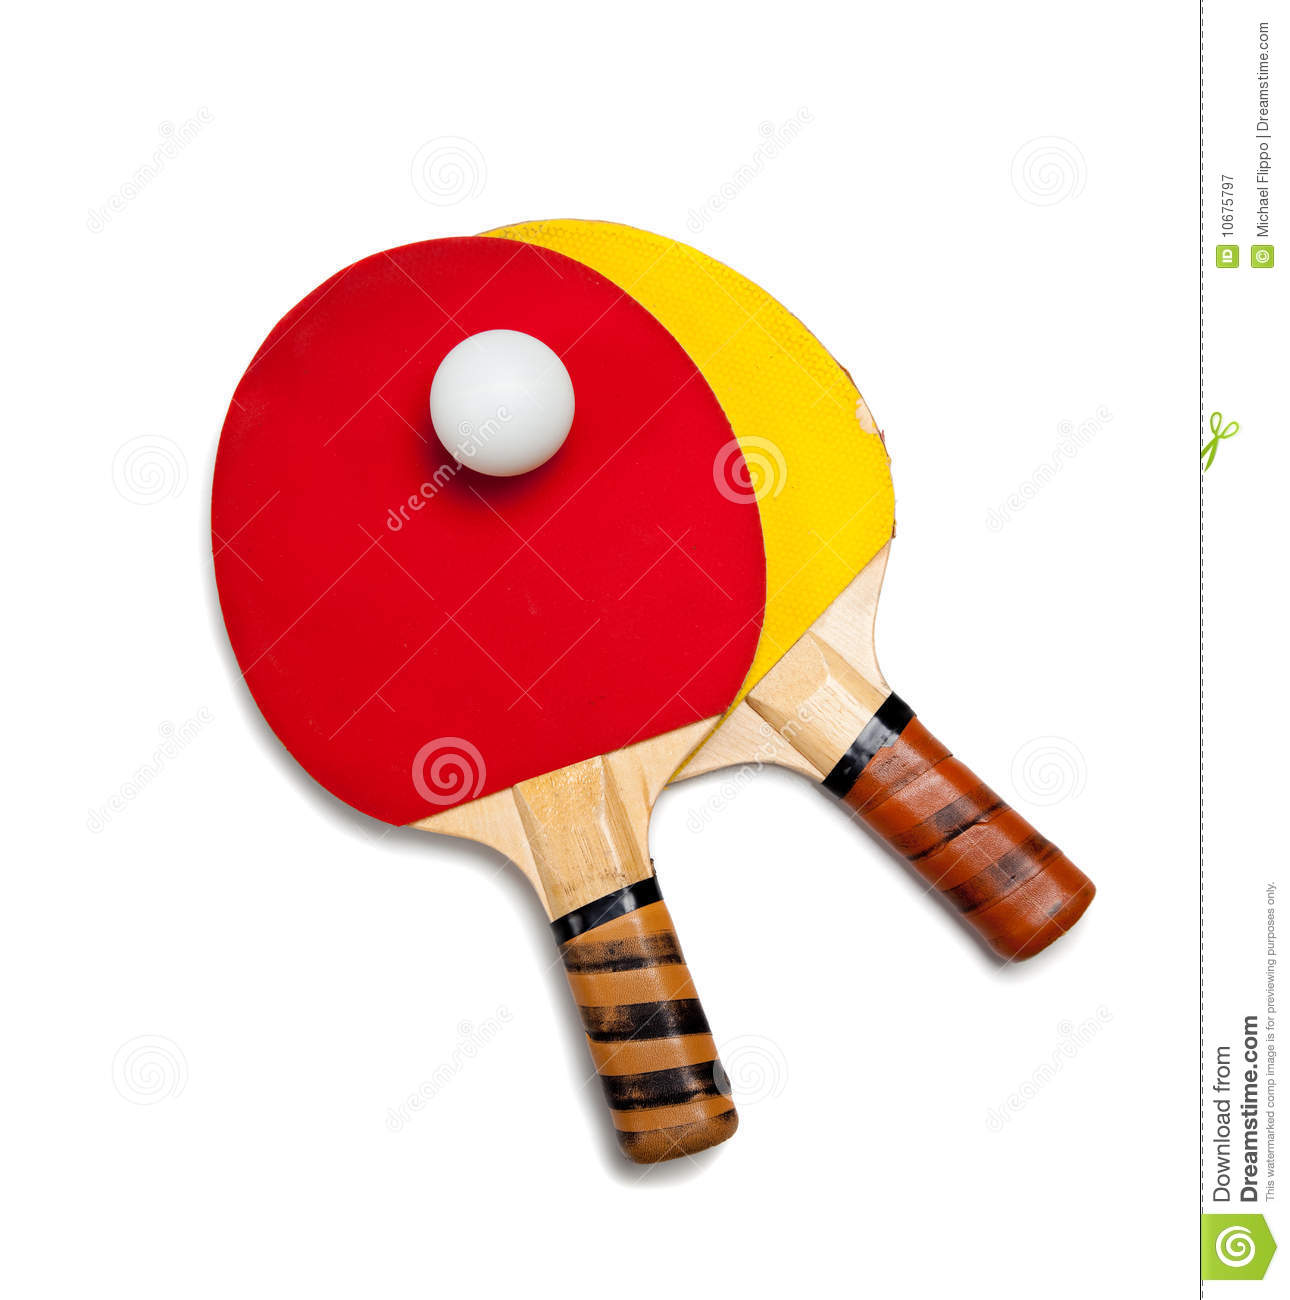 Ping pong or table tennis equipment stock image image of table olympic 10675797 - Equipment for table tennis ...